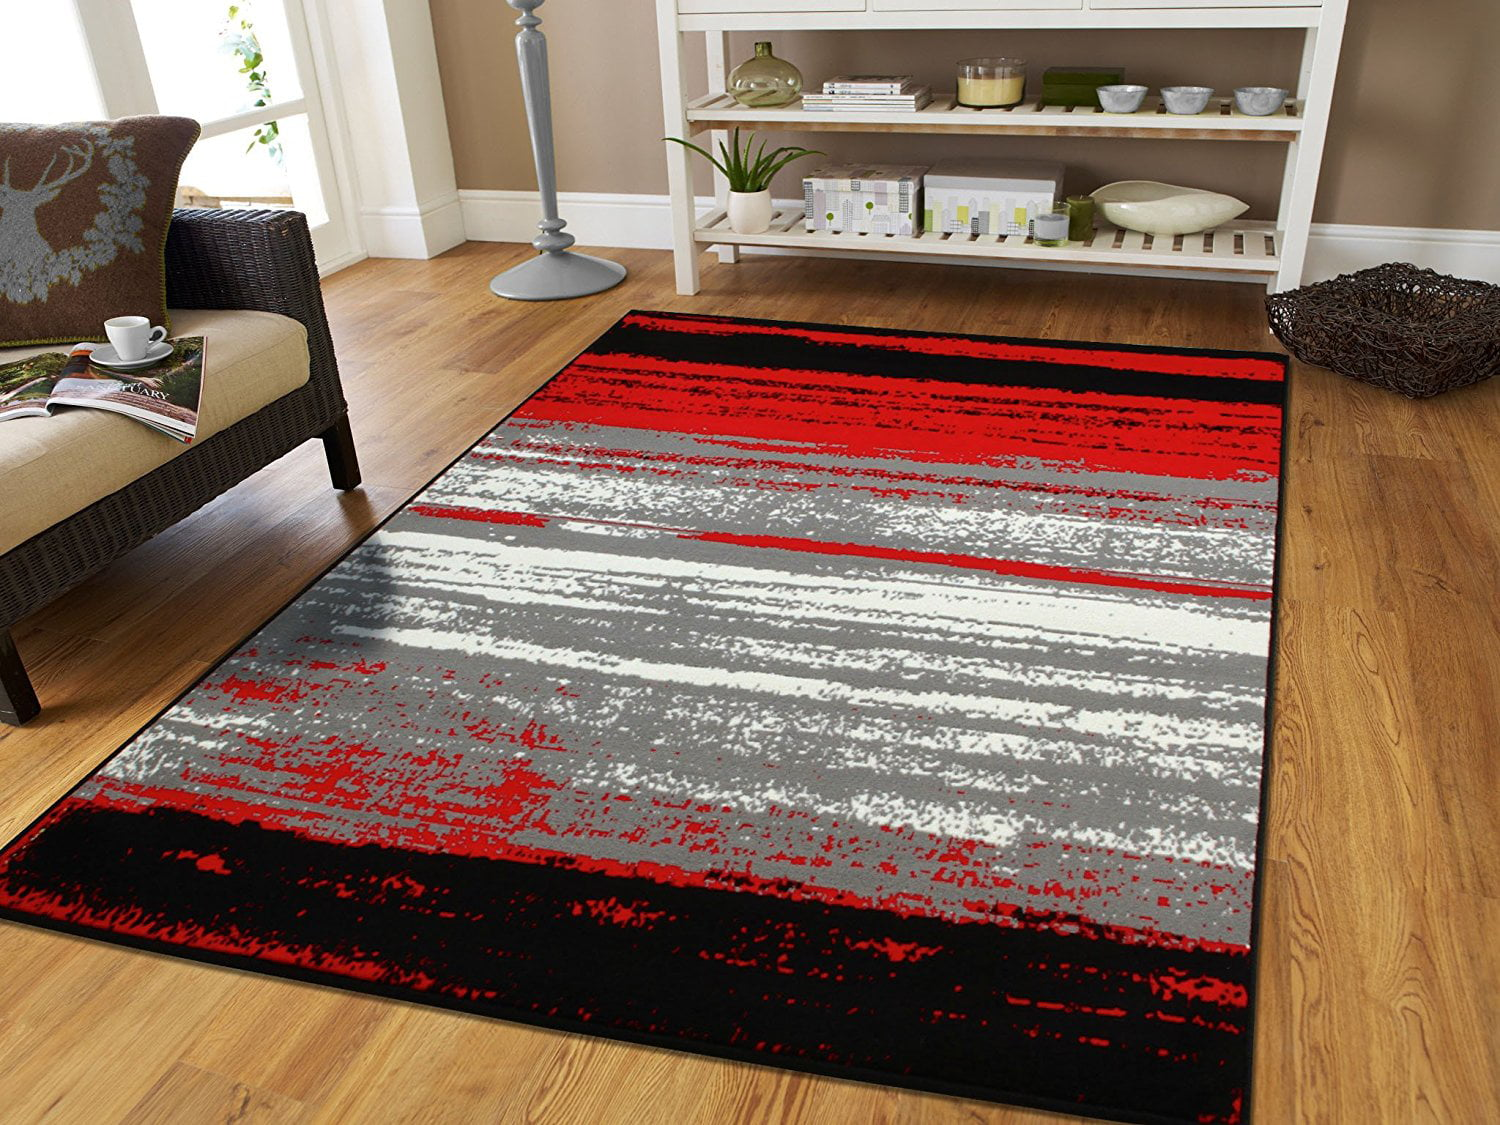 Large 8x11 Contemporary Area Rugs Red Black Gray 8x10 Area Rugs